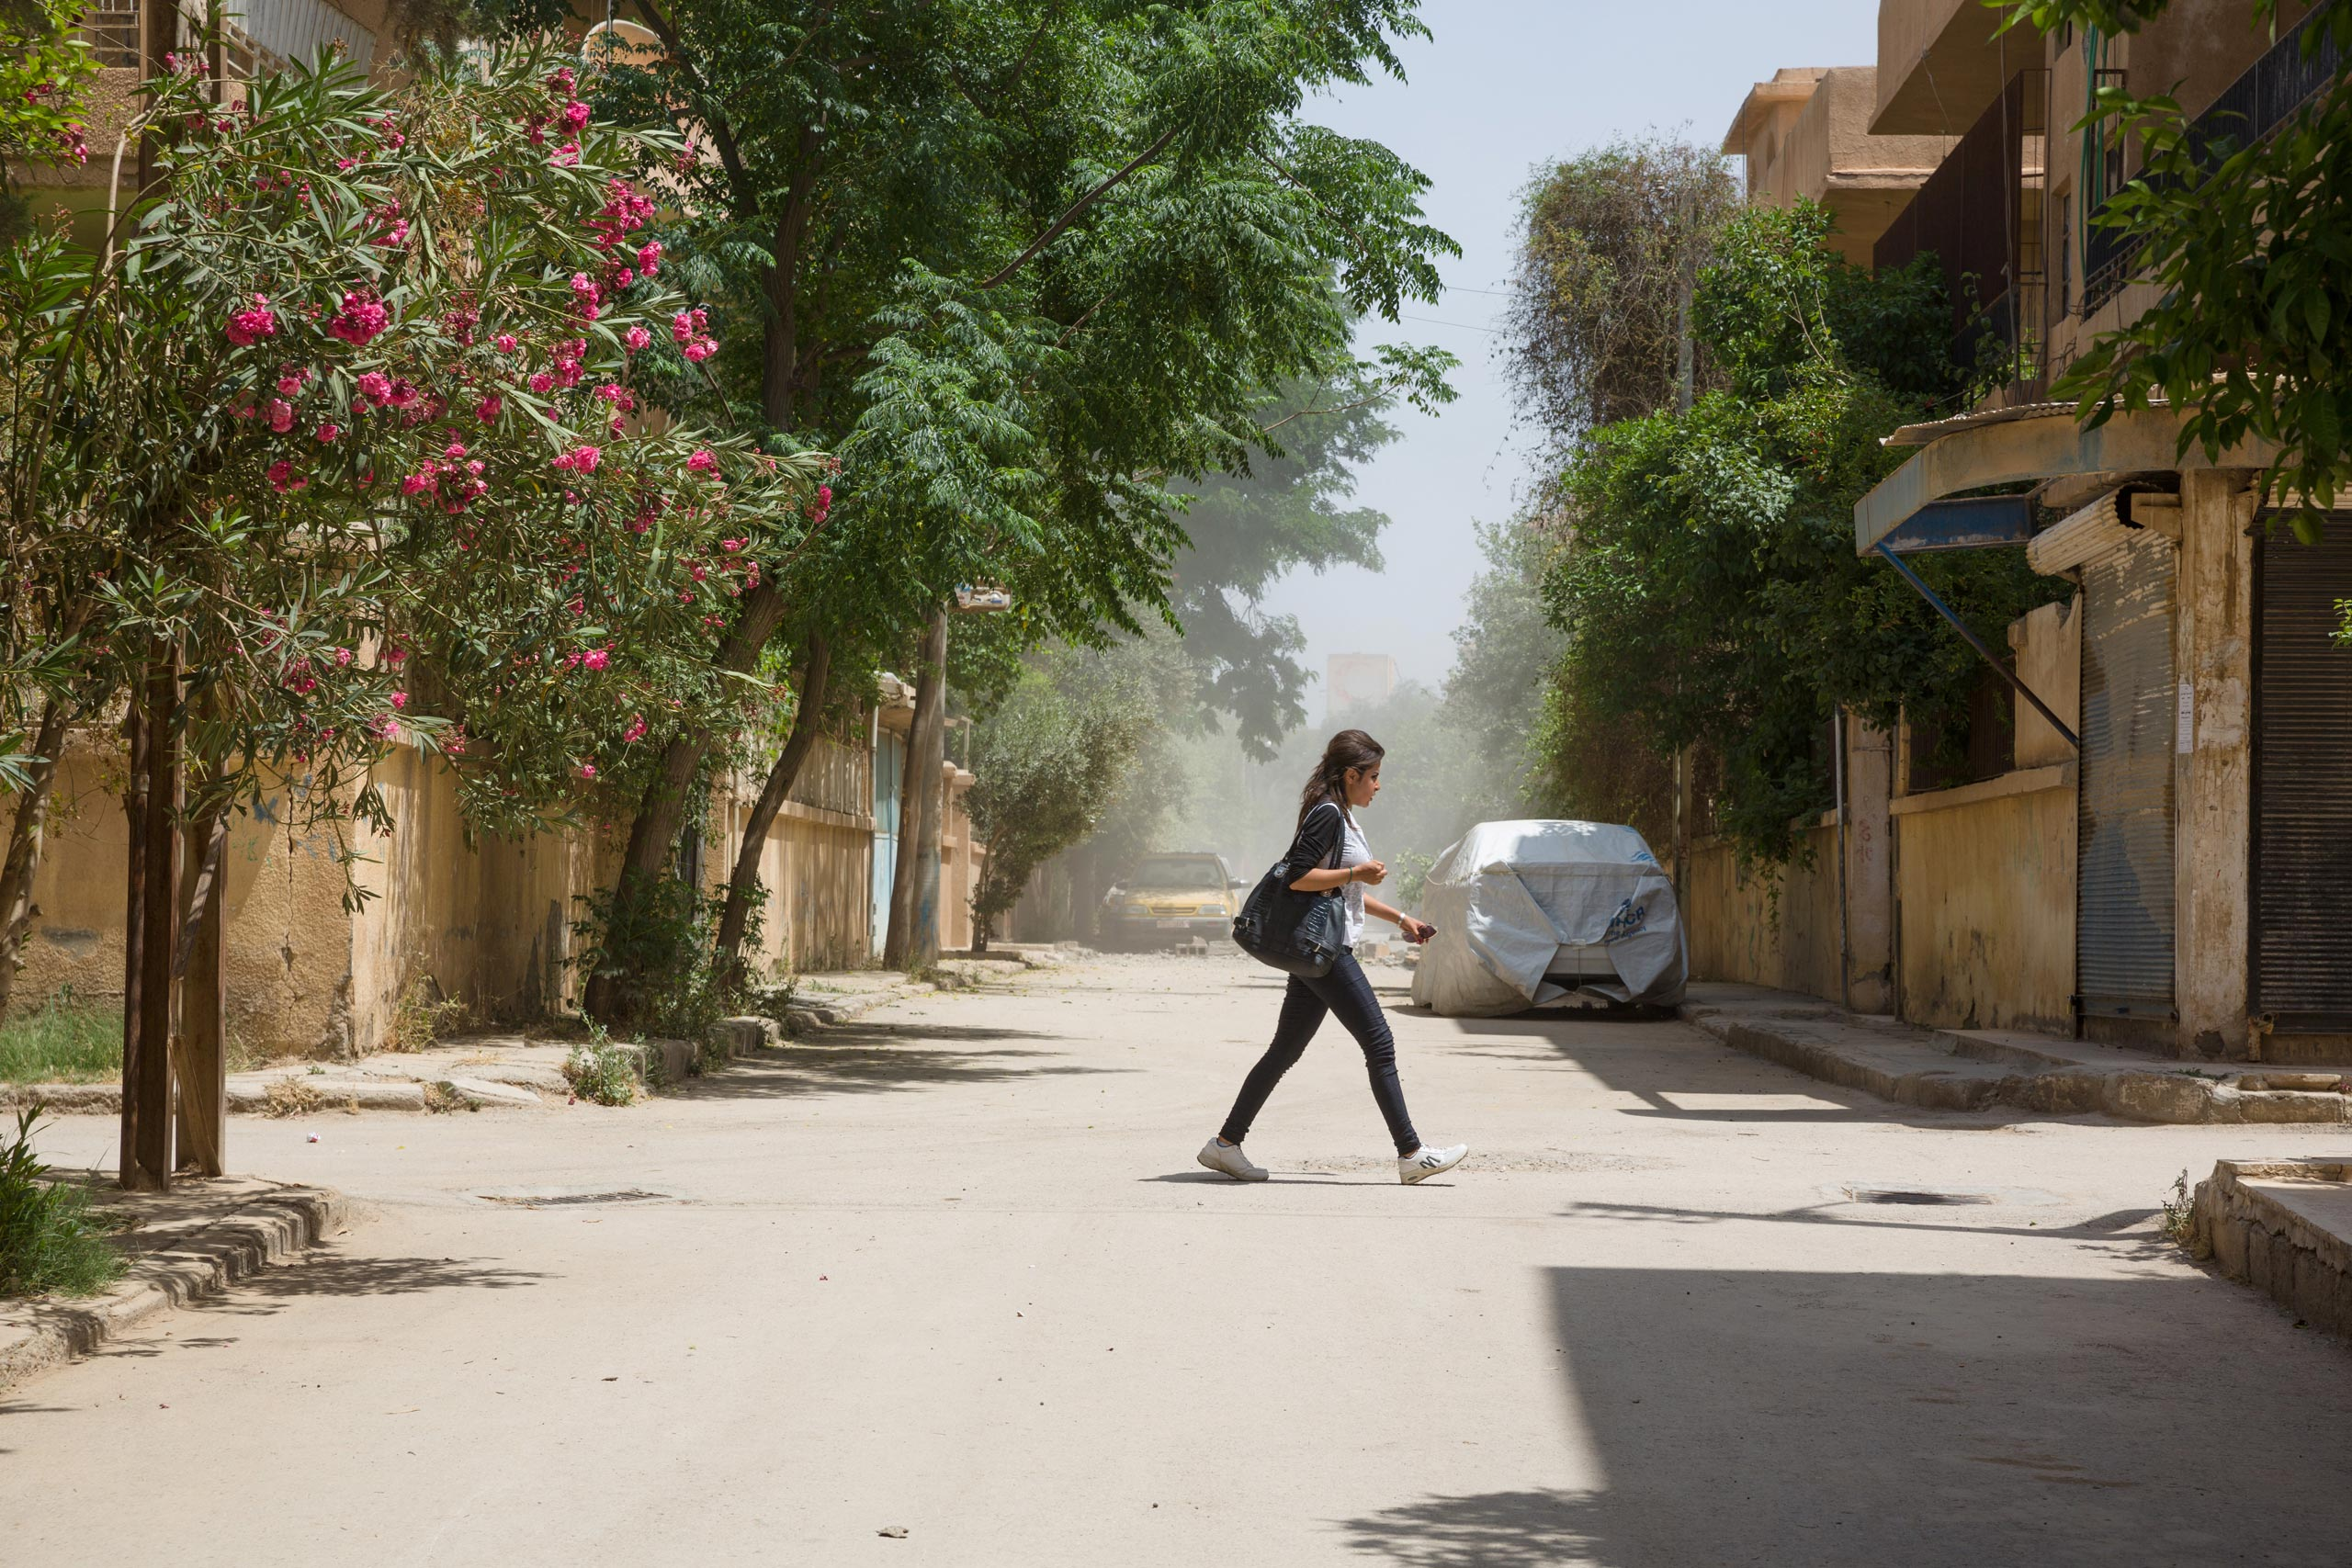 A young woman crosses a street in Ghazi Ayaash, a residential neighborhood of Deir-ez Zor a few hundred feet from the frontline, after a mortar attack from an ISIS position. The city is an outpost of modernity surrounded by ISIS-controlled areas where strict Islamic law is enforced, May 20, 2015.